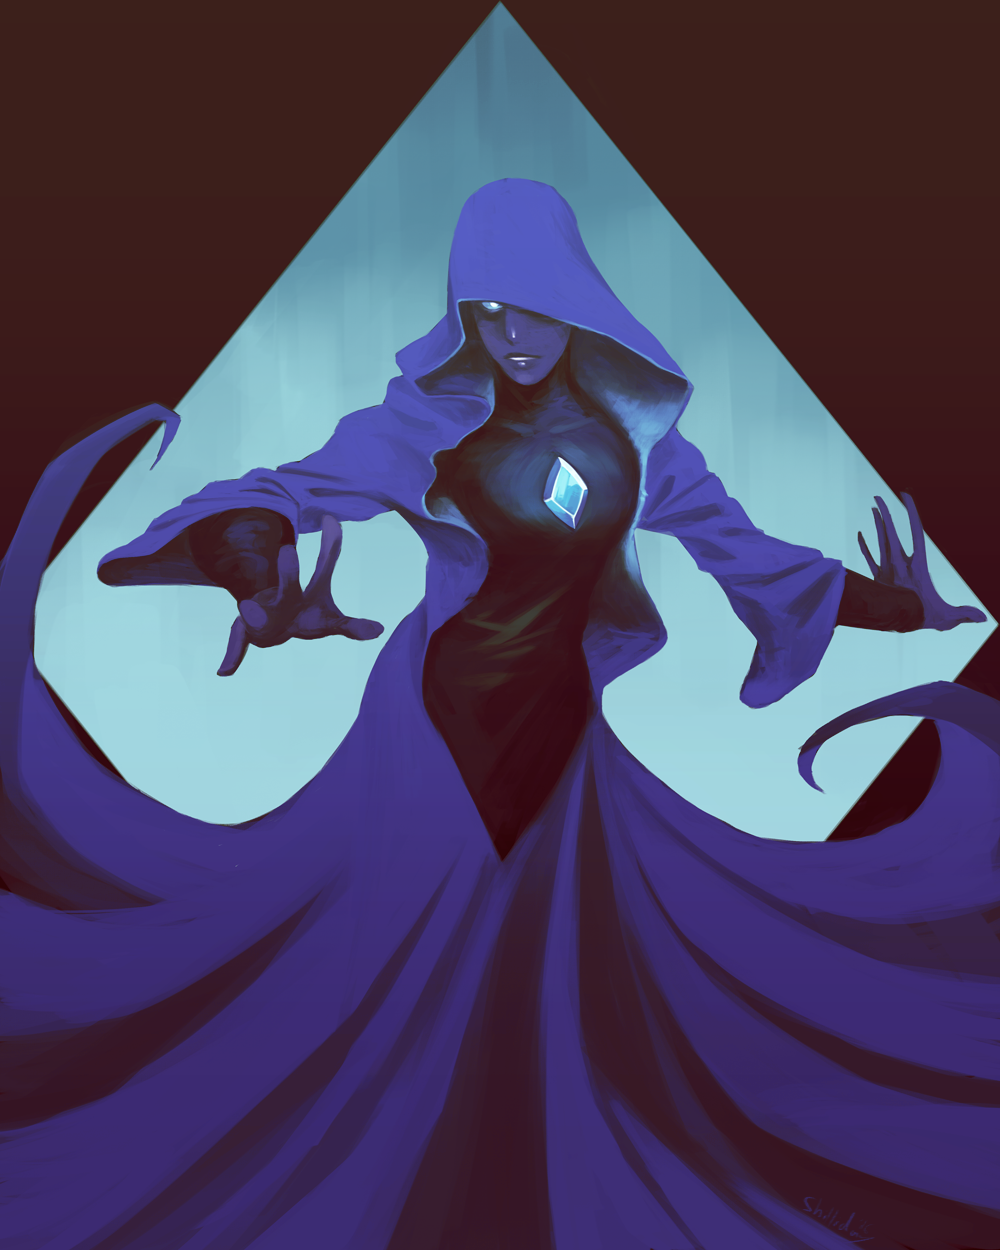 Blue Diamond print I did for Hal-con, I still need to do 5 more prints so we have a fresh run this year, any suggestions?